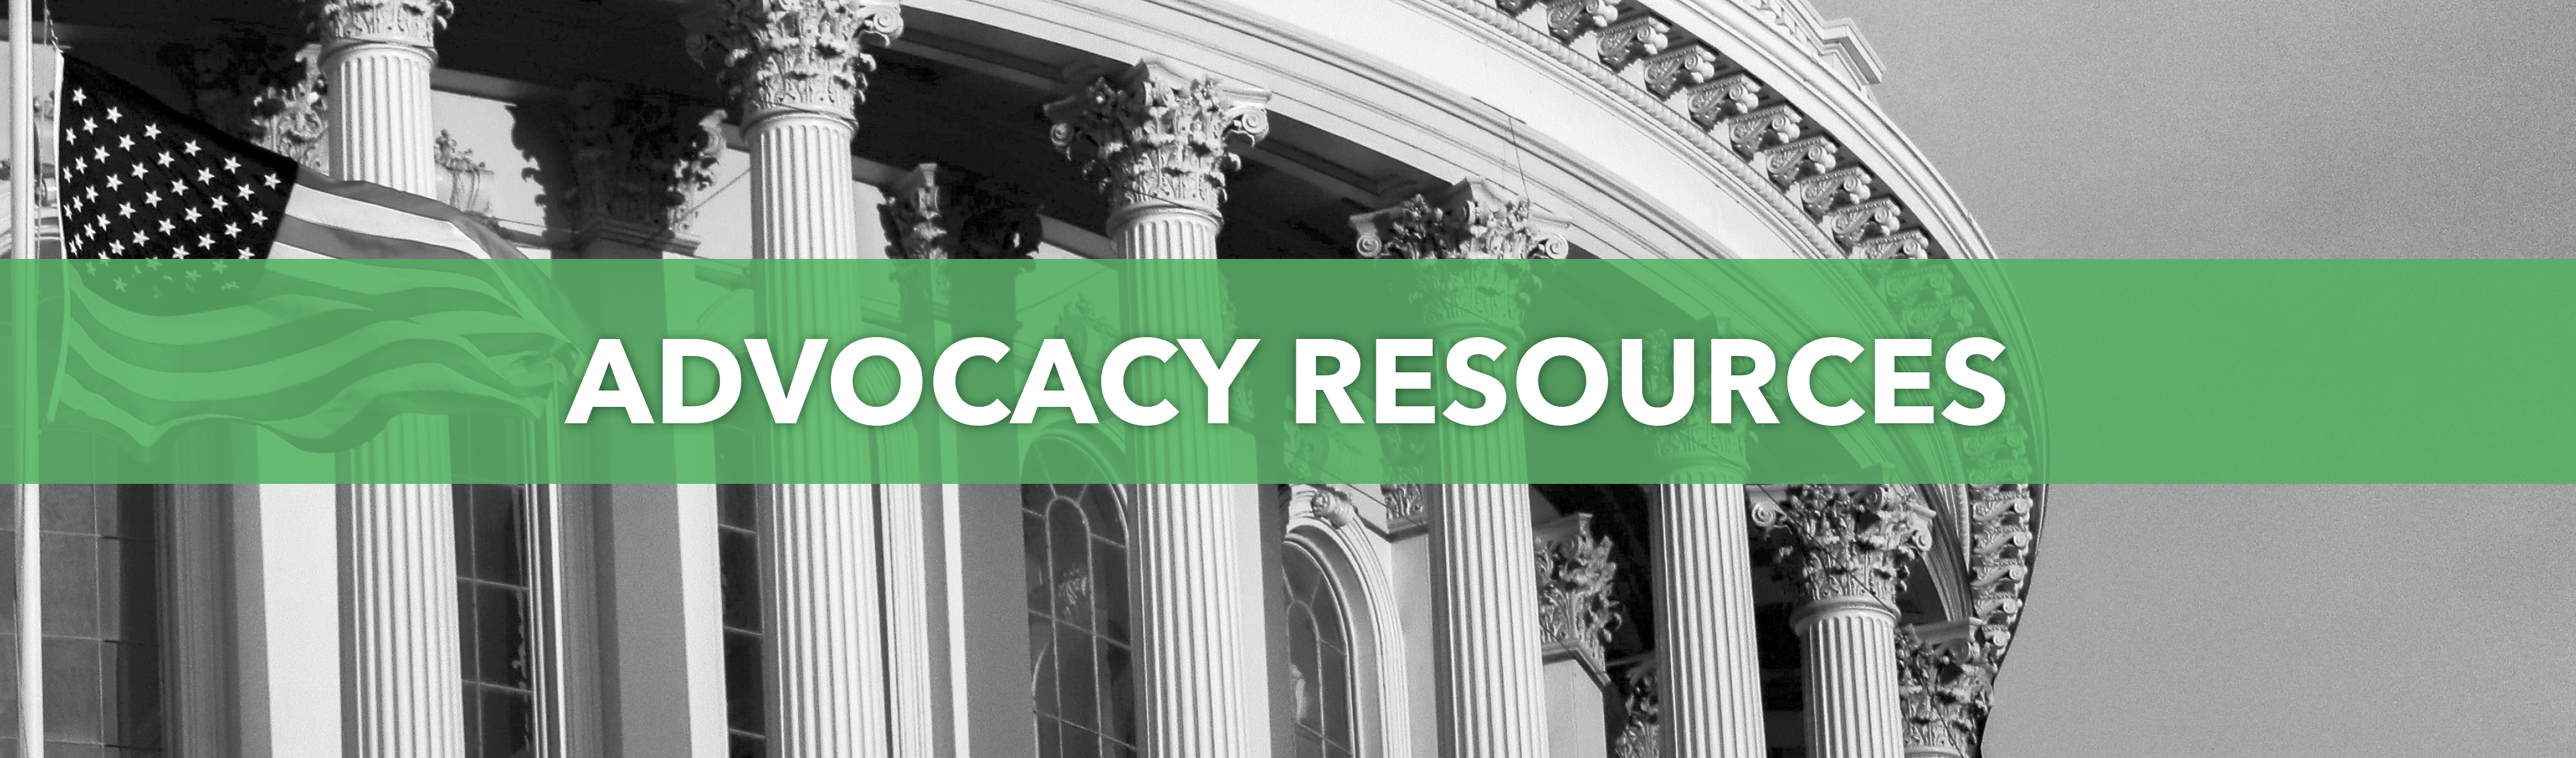 Advocacy Resources by HealthPRO Heritage